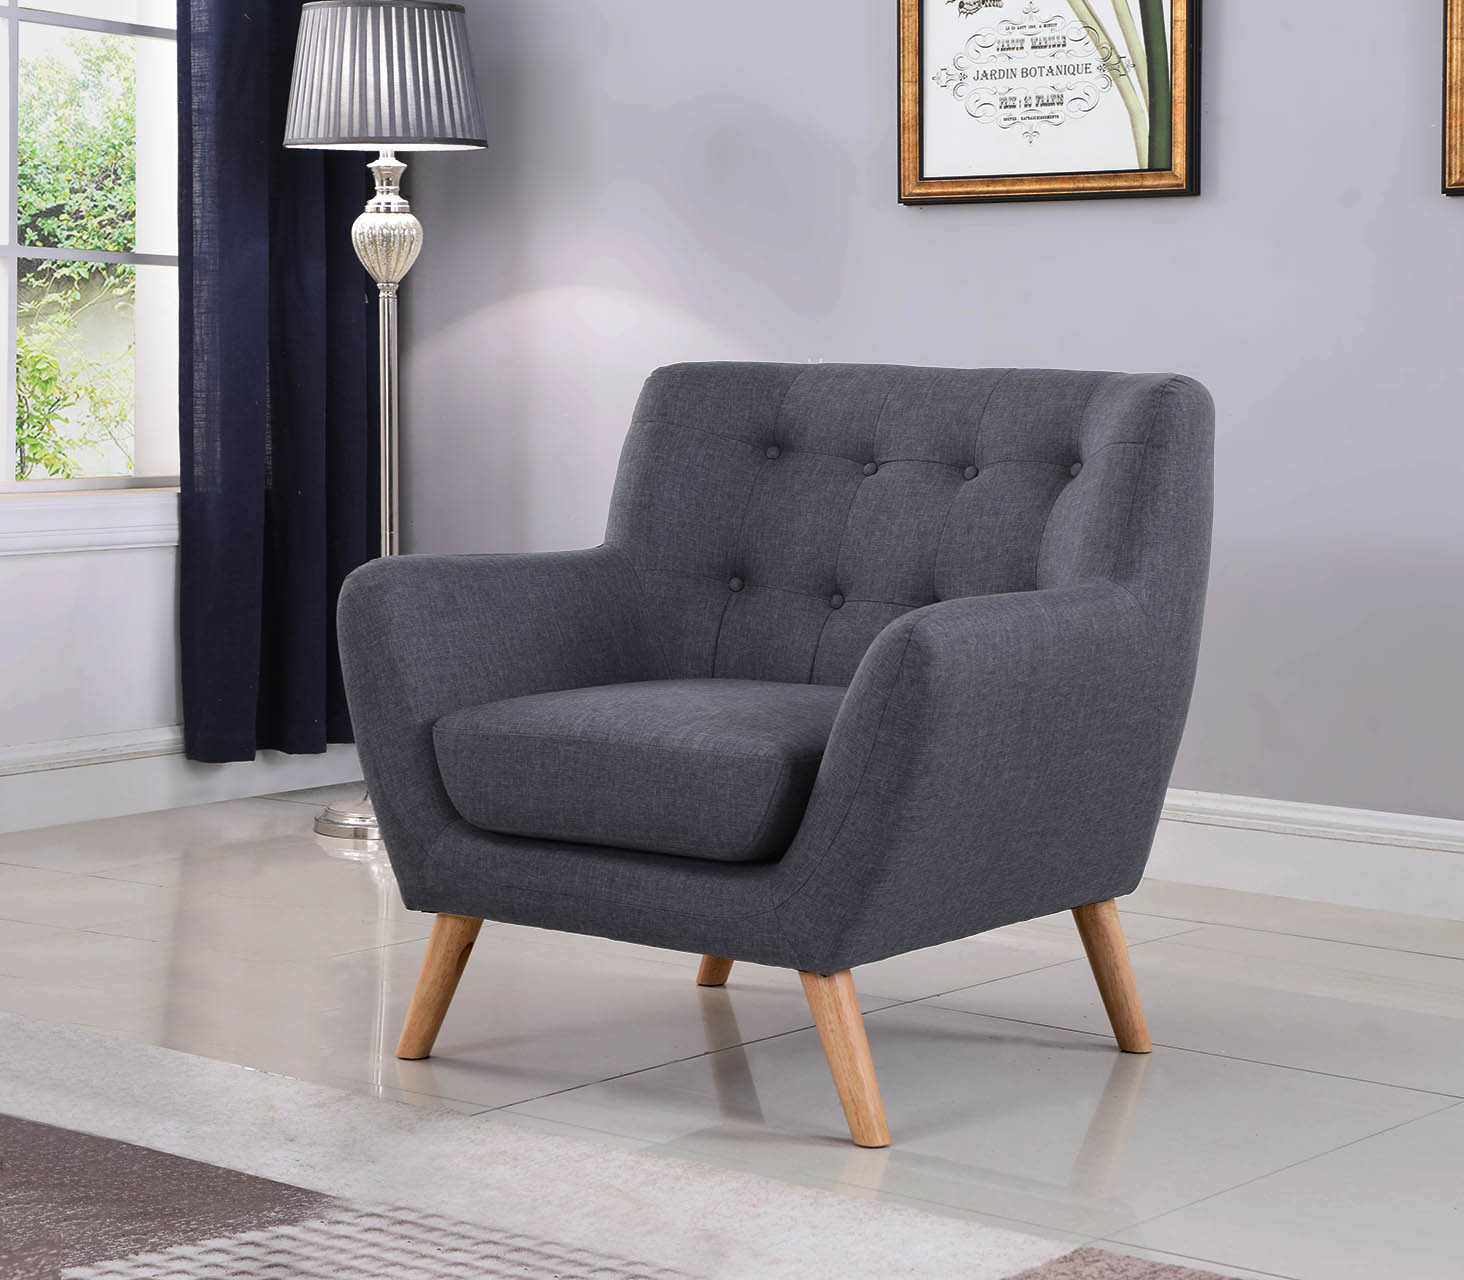 Marvelous Sofa Set Milton Greens Stars Lowest Price Possible With Unemploymentrelief Wooden Chair Designs For Living Room Unemploymentrelieforg